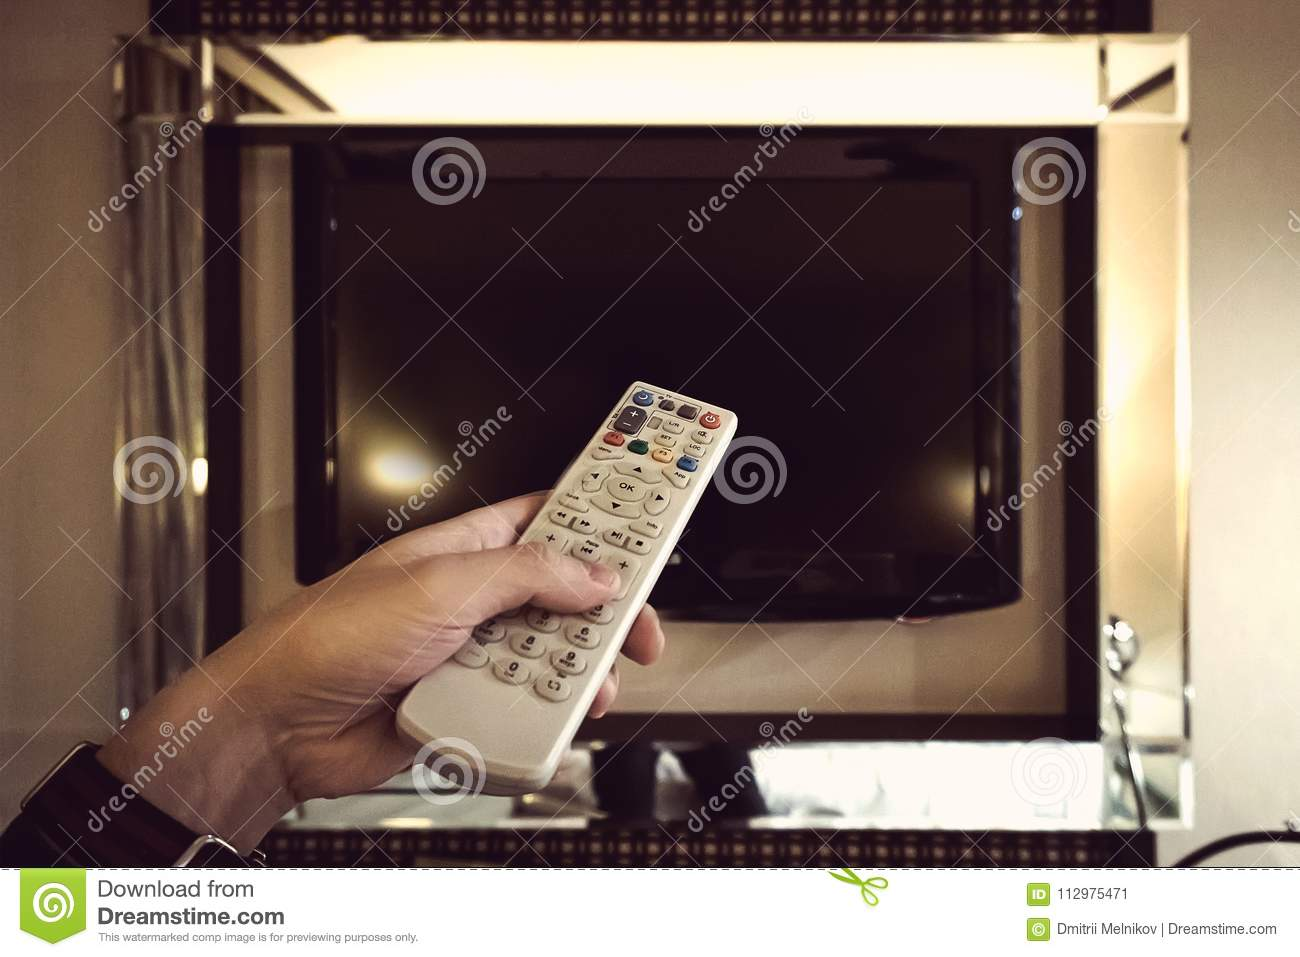 tv remote control in the hand